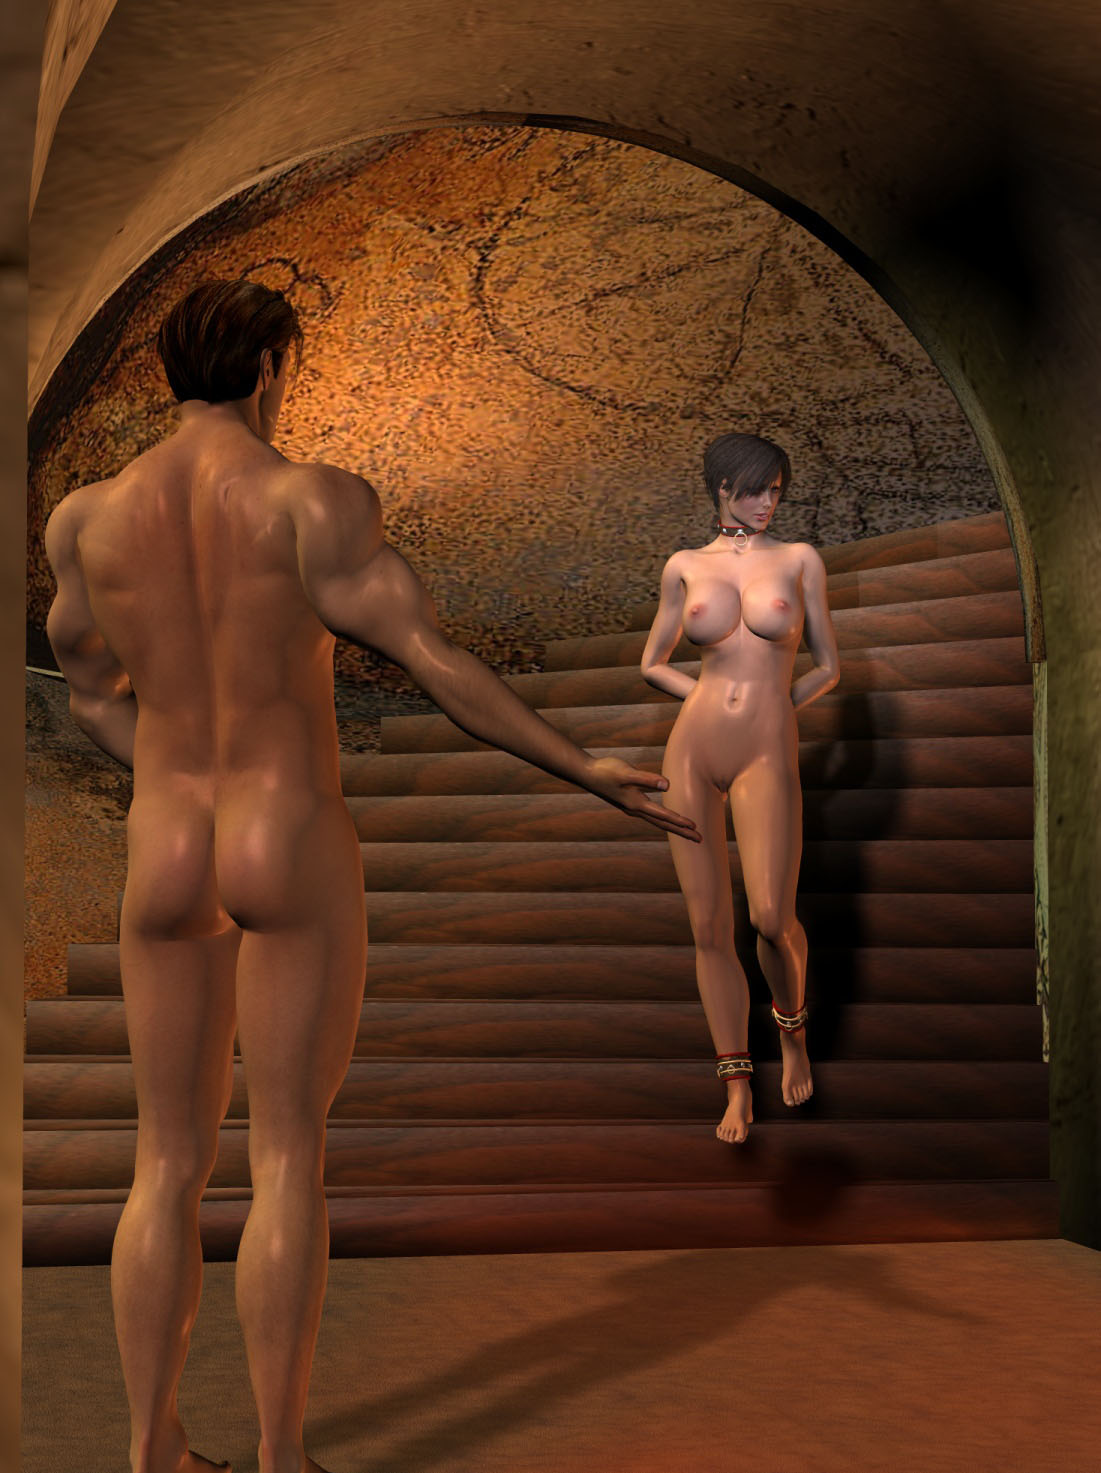 3d nude women video porncraft clip